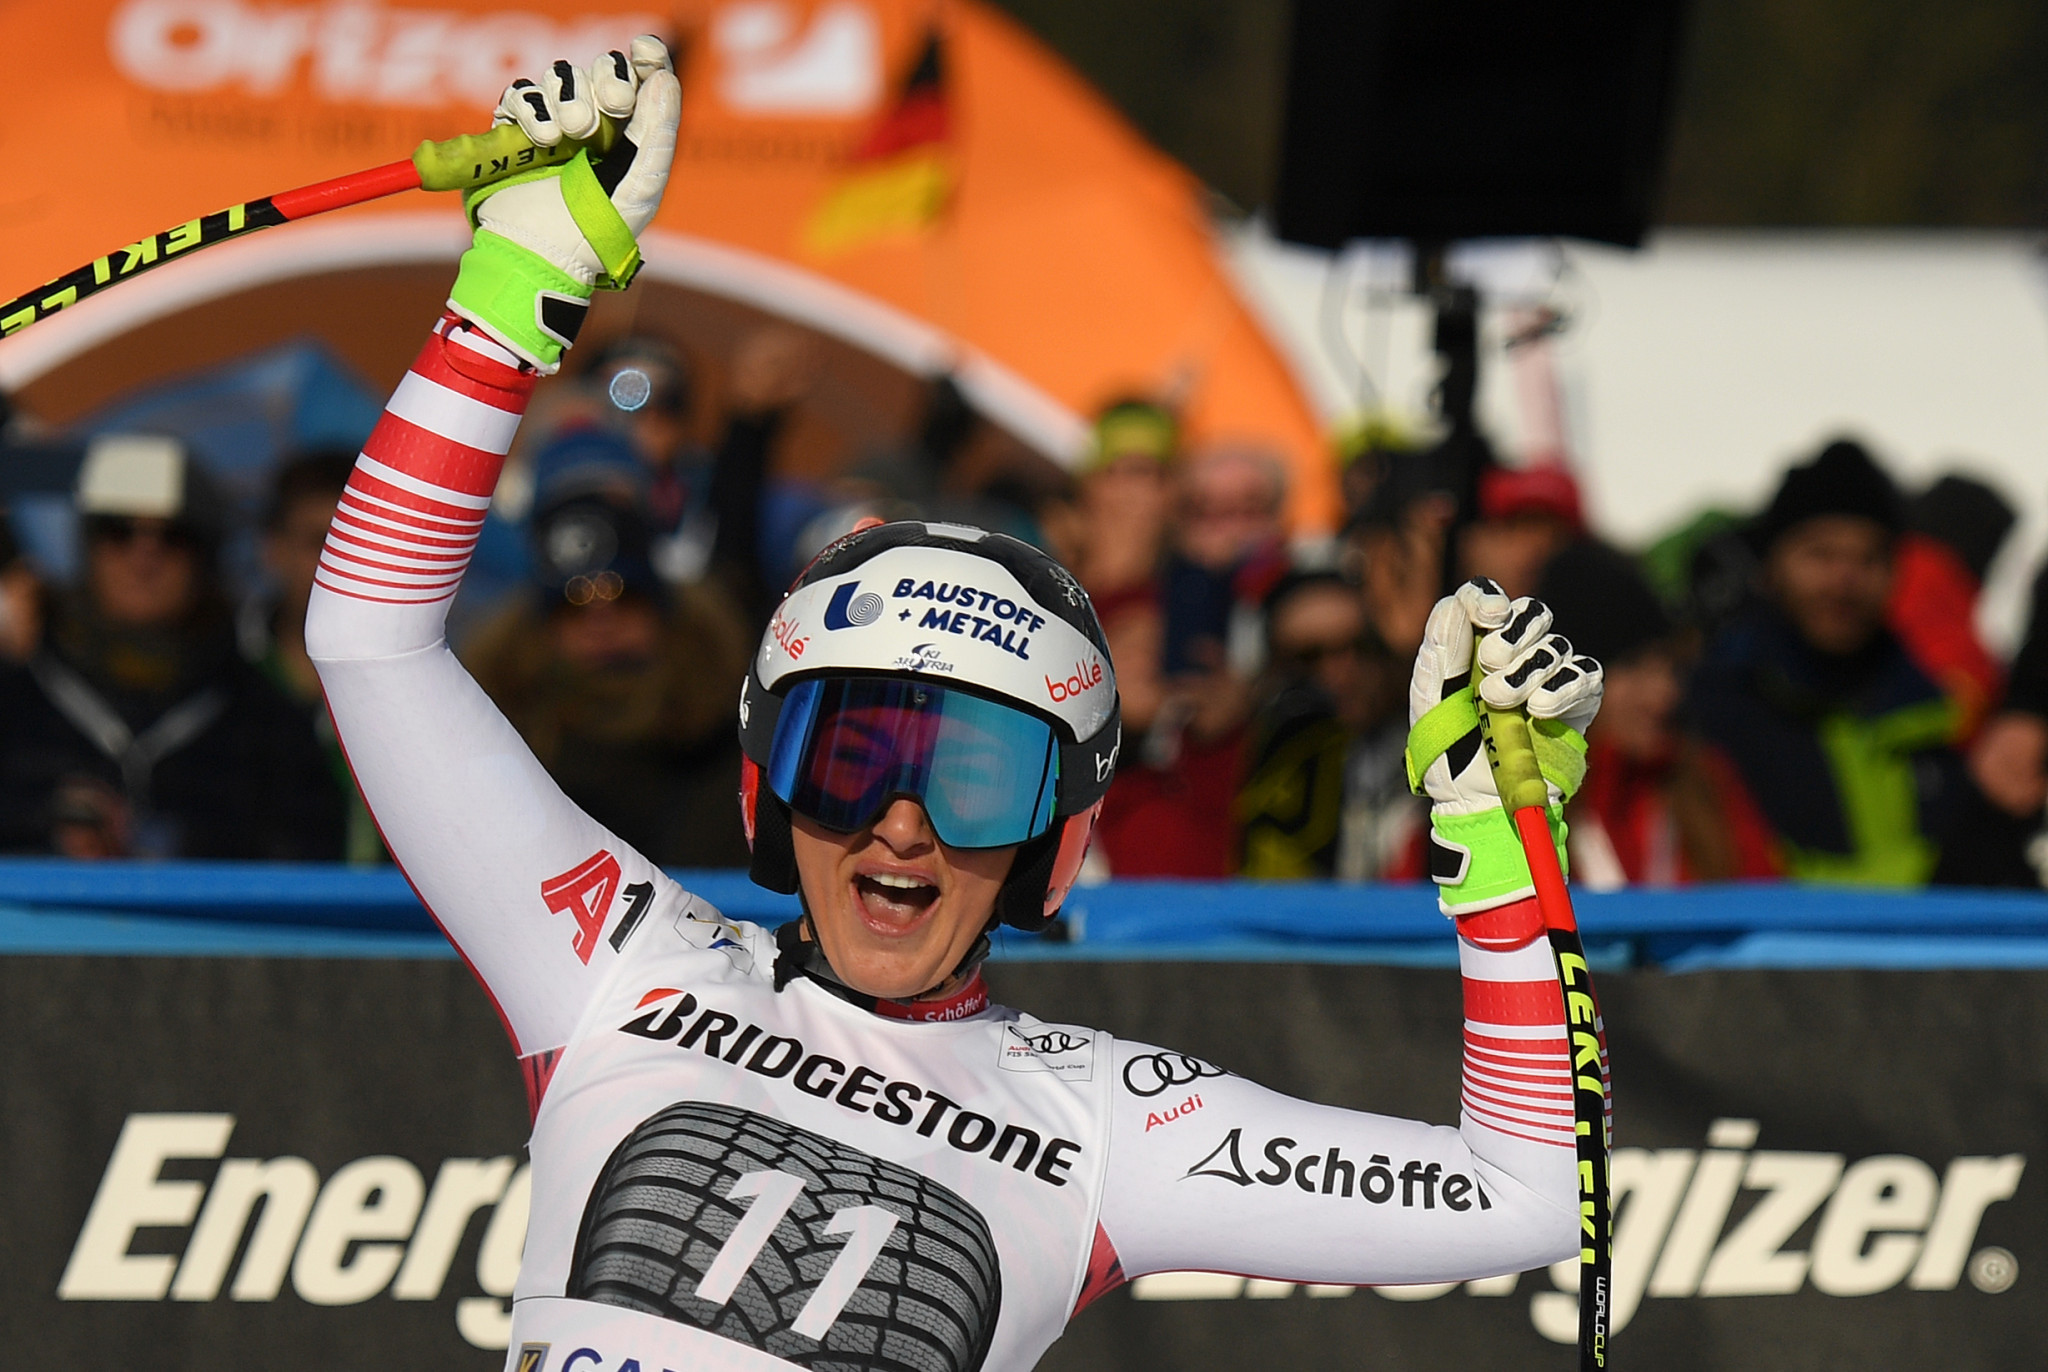 Stephanie Venier triumphed in the women's downhill in Garmisch to claim the first World Cup win of her career ©Getty Images